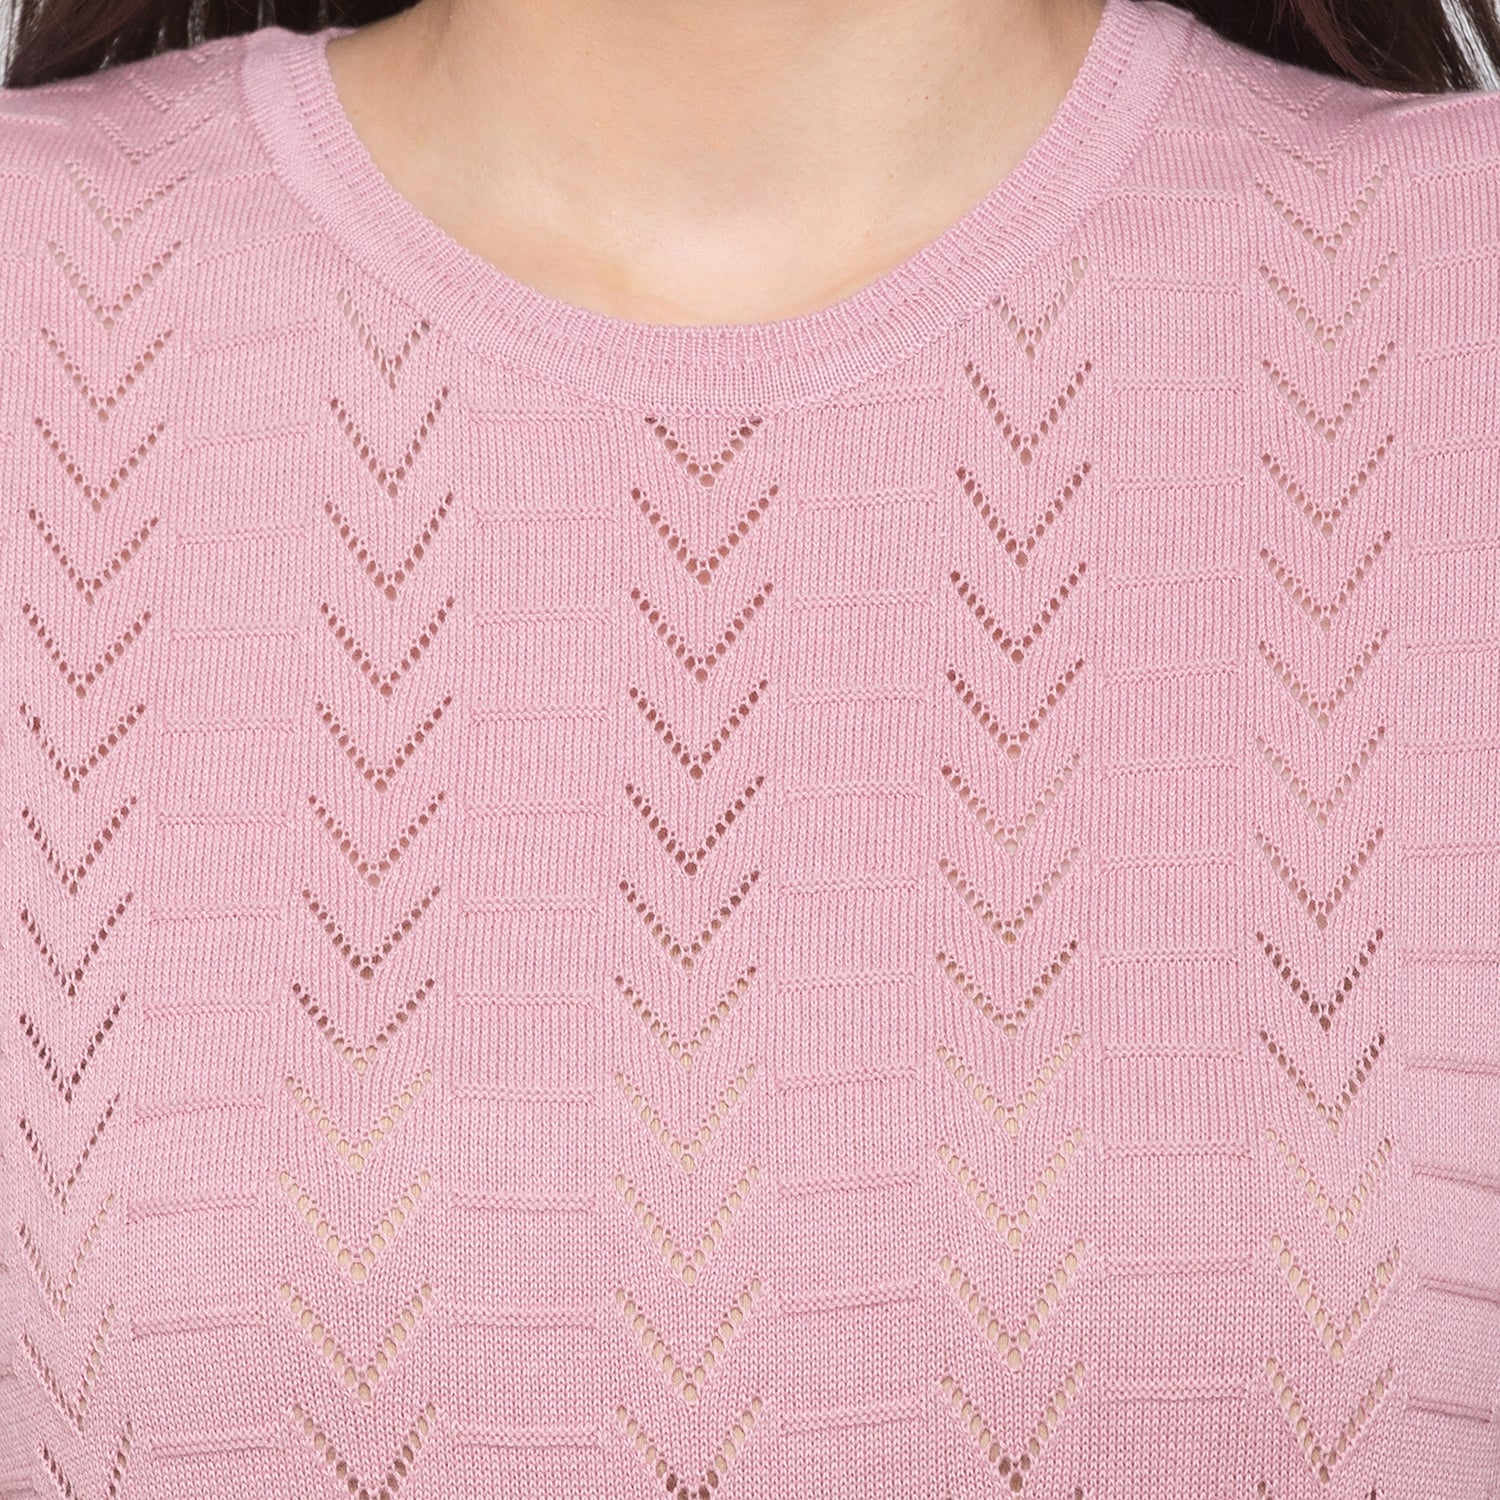 Globus Pink Knitted Top5